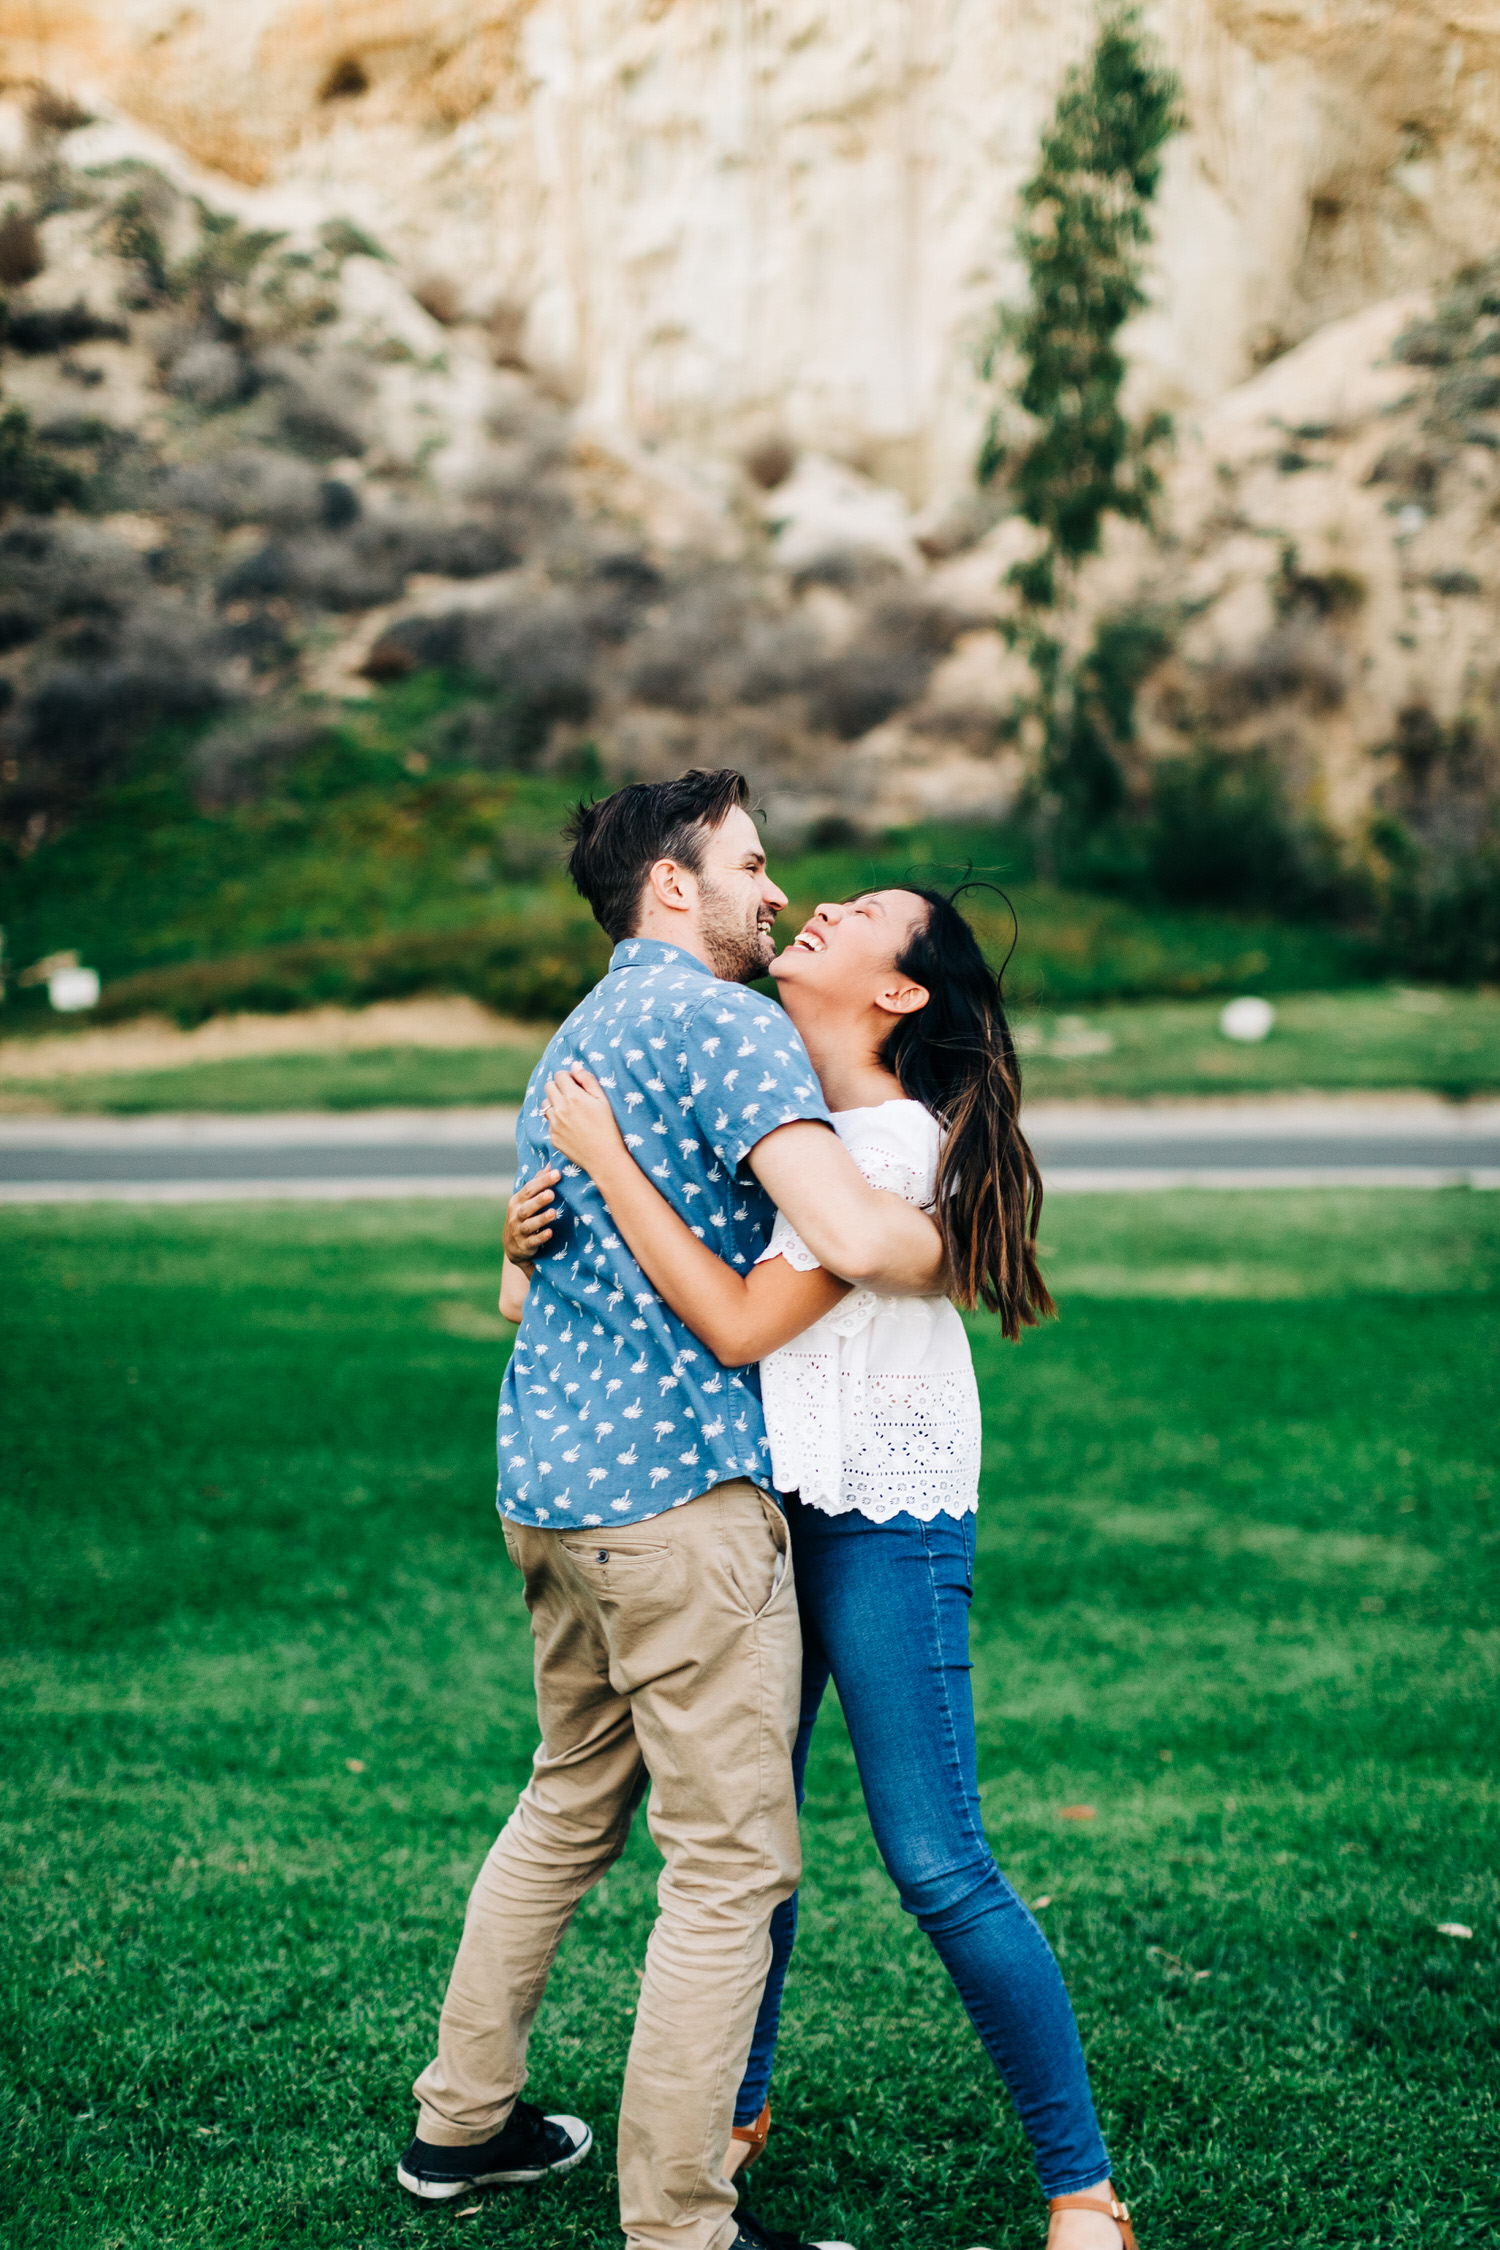 Angelina&Neal-Edits_960-1-Clarisse-Rae-Southern-California-Wedding-Photographer-Orange-county-Engagement-Photos.jpg